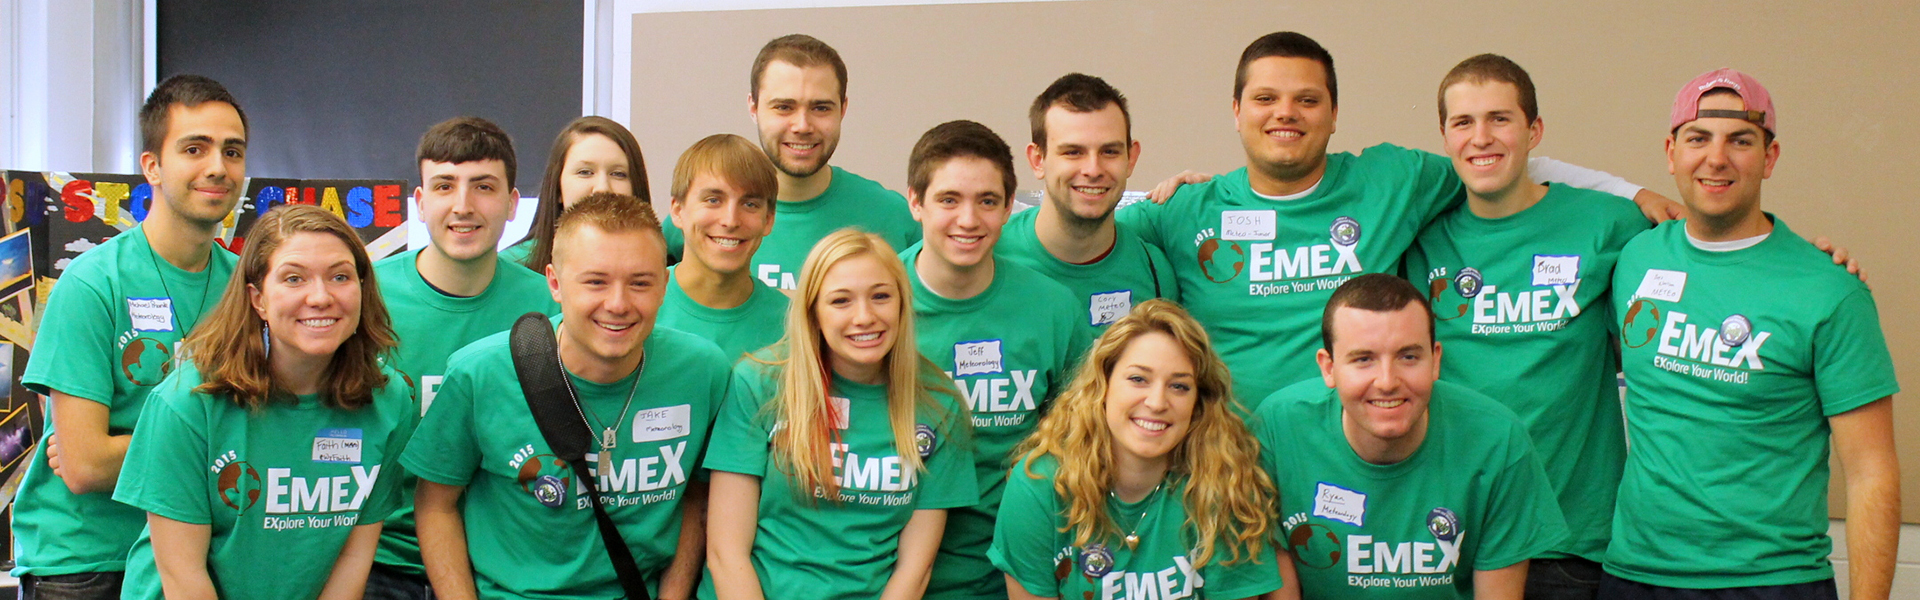 EMEX students